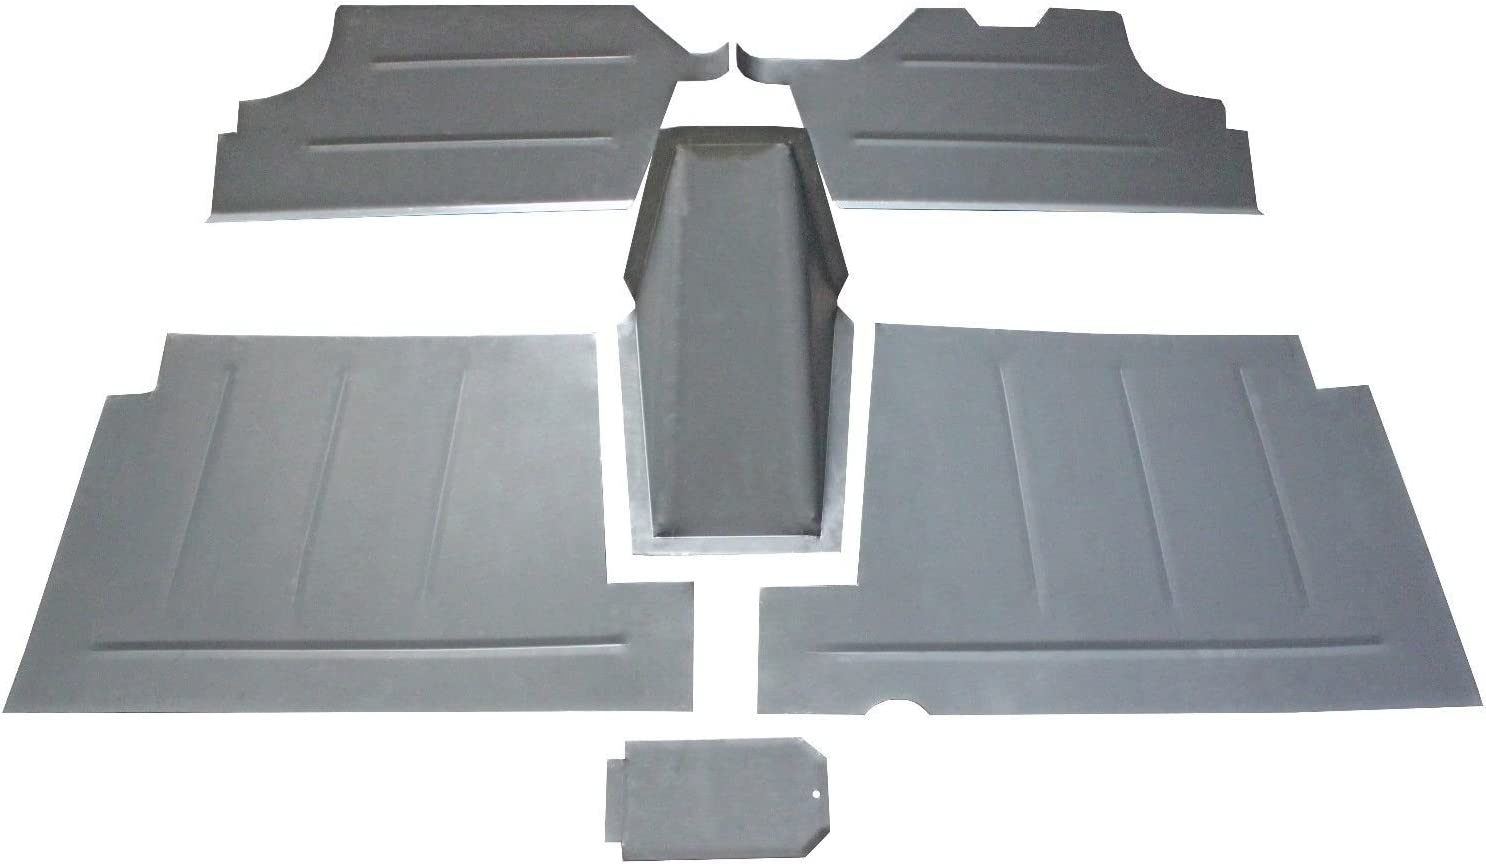 Motor City Sheet Metal Works With 1953-1969 1970 1971 1972 Ford Pickup Truck F-100 Flareside Bed STEEL Roll Pan